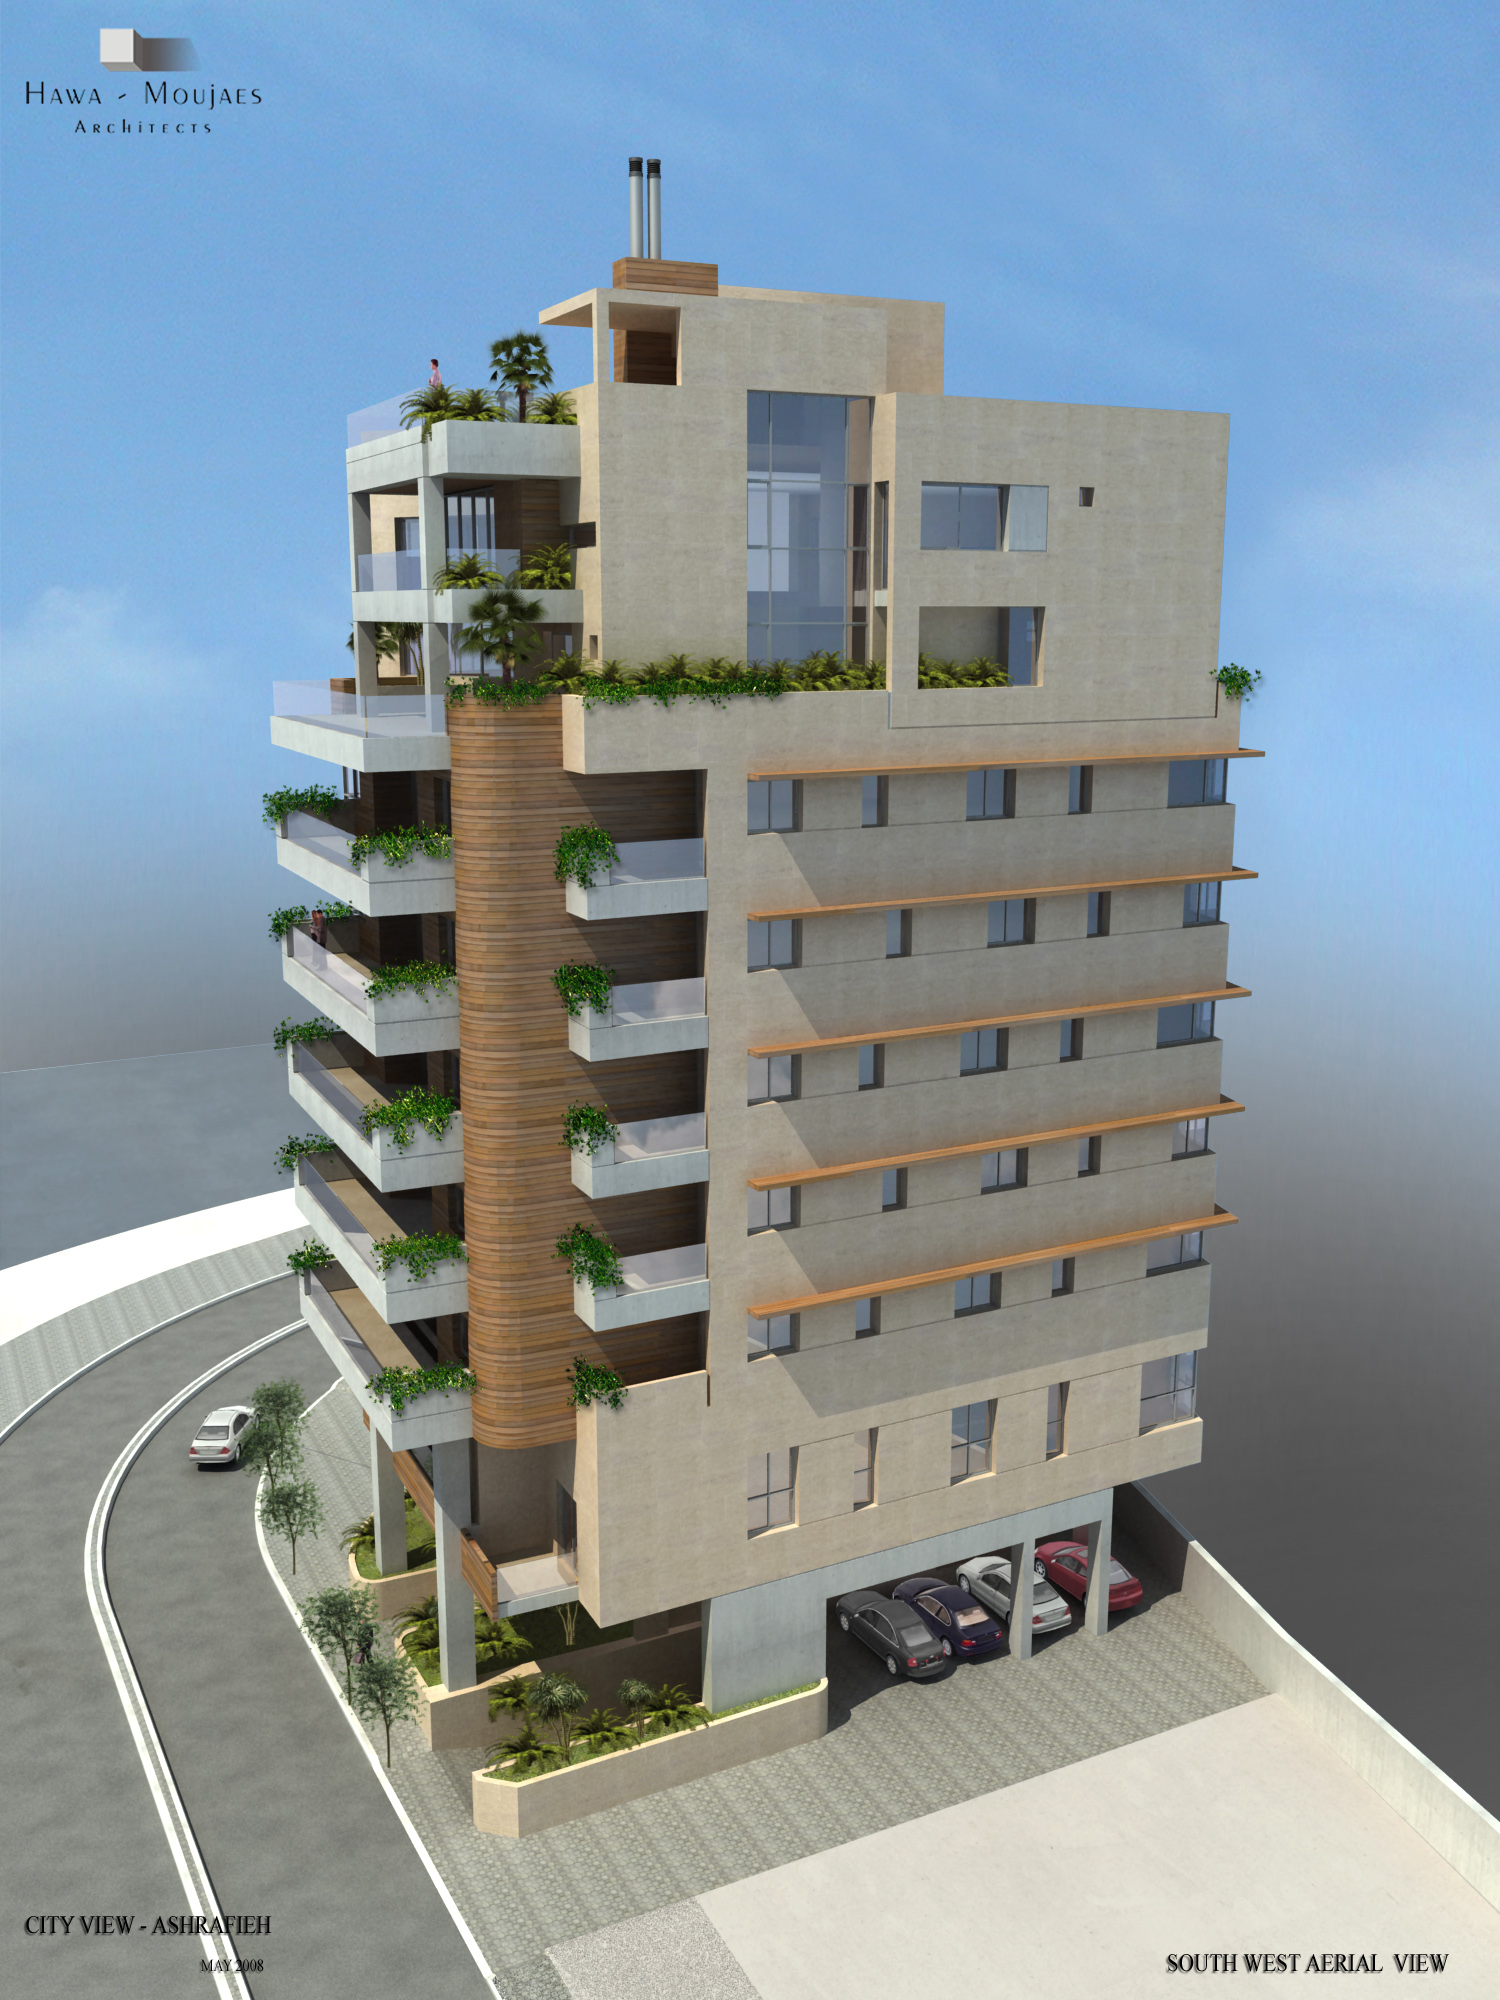 20. City View - Achrafieh, Lebanon